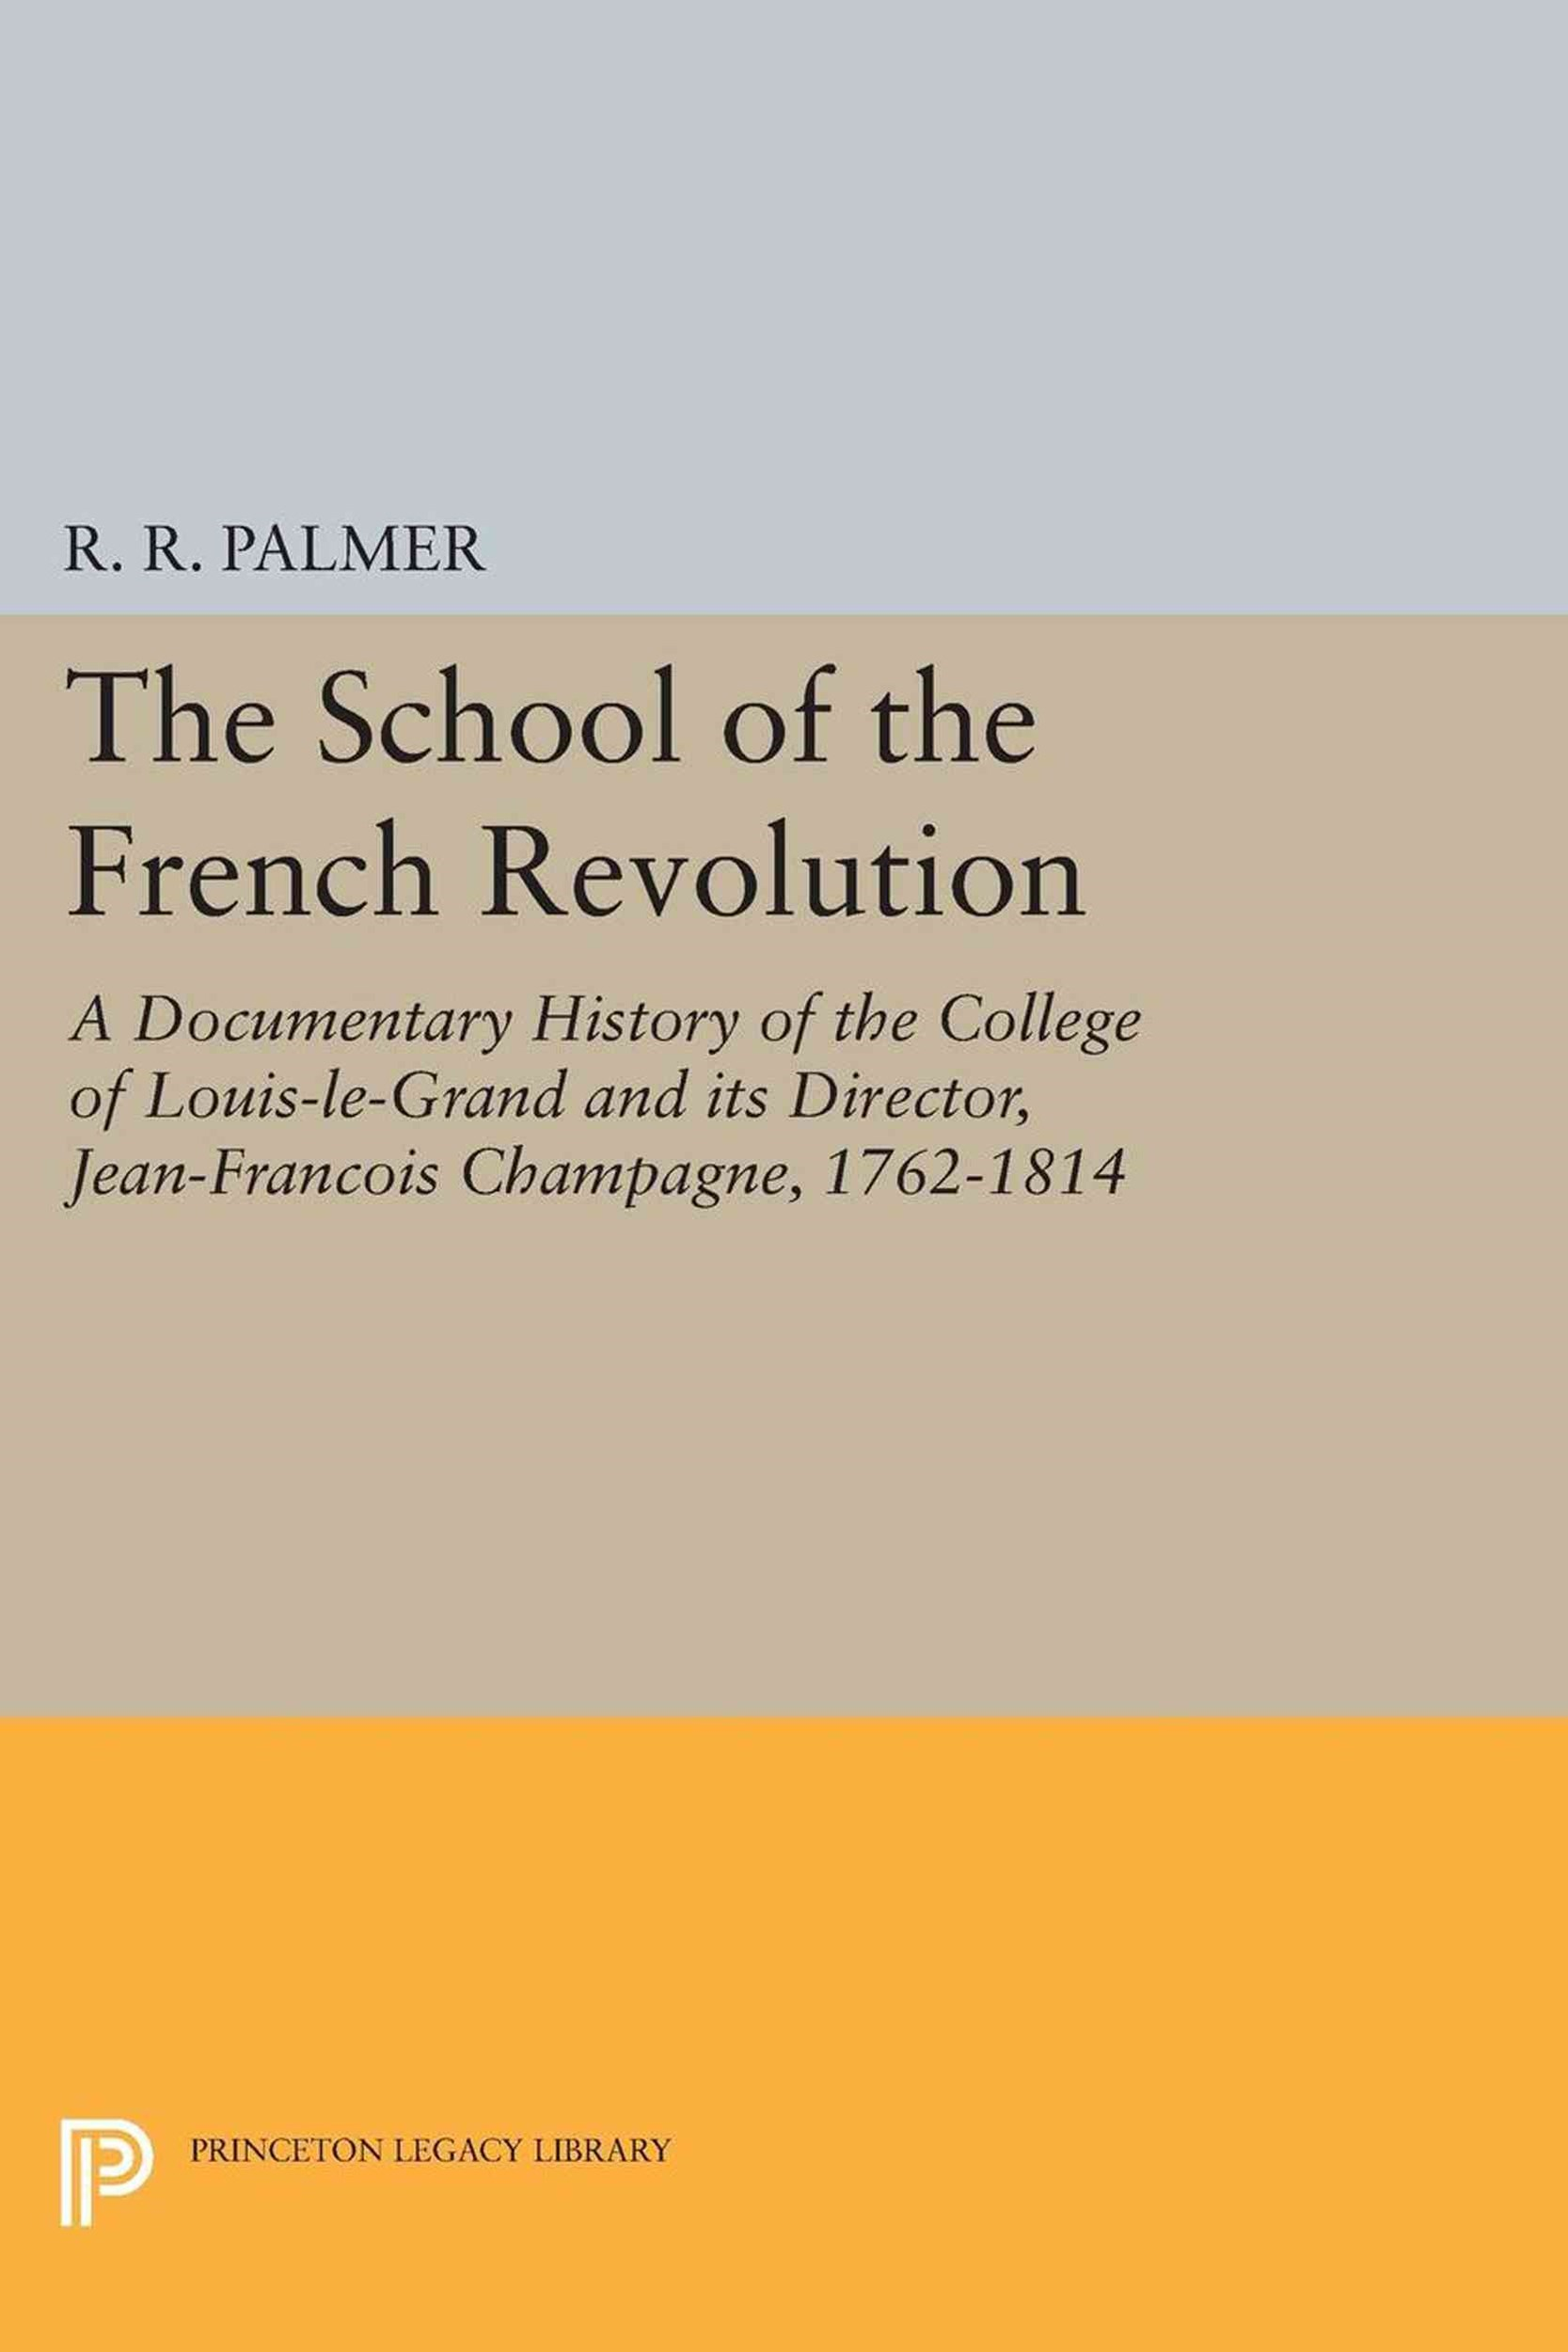 The School of the French Revolution